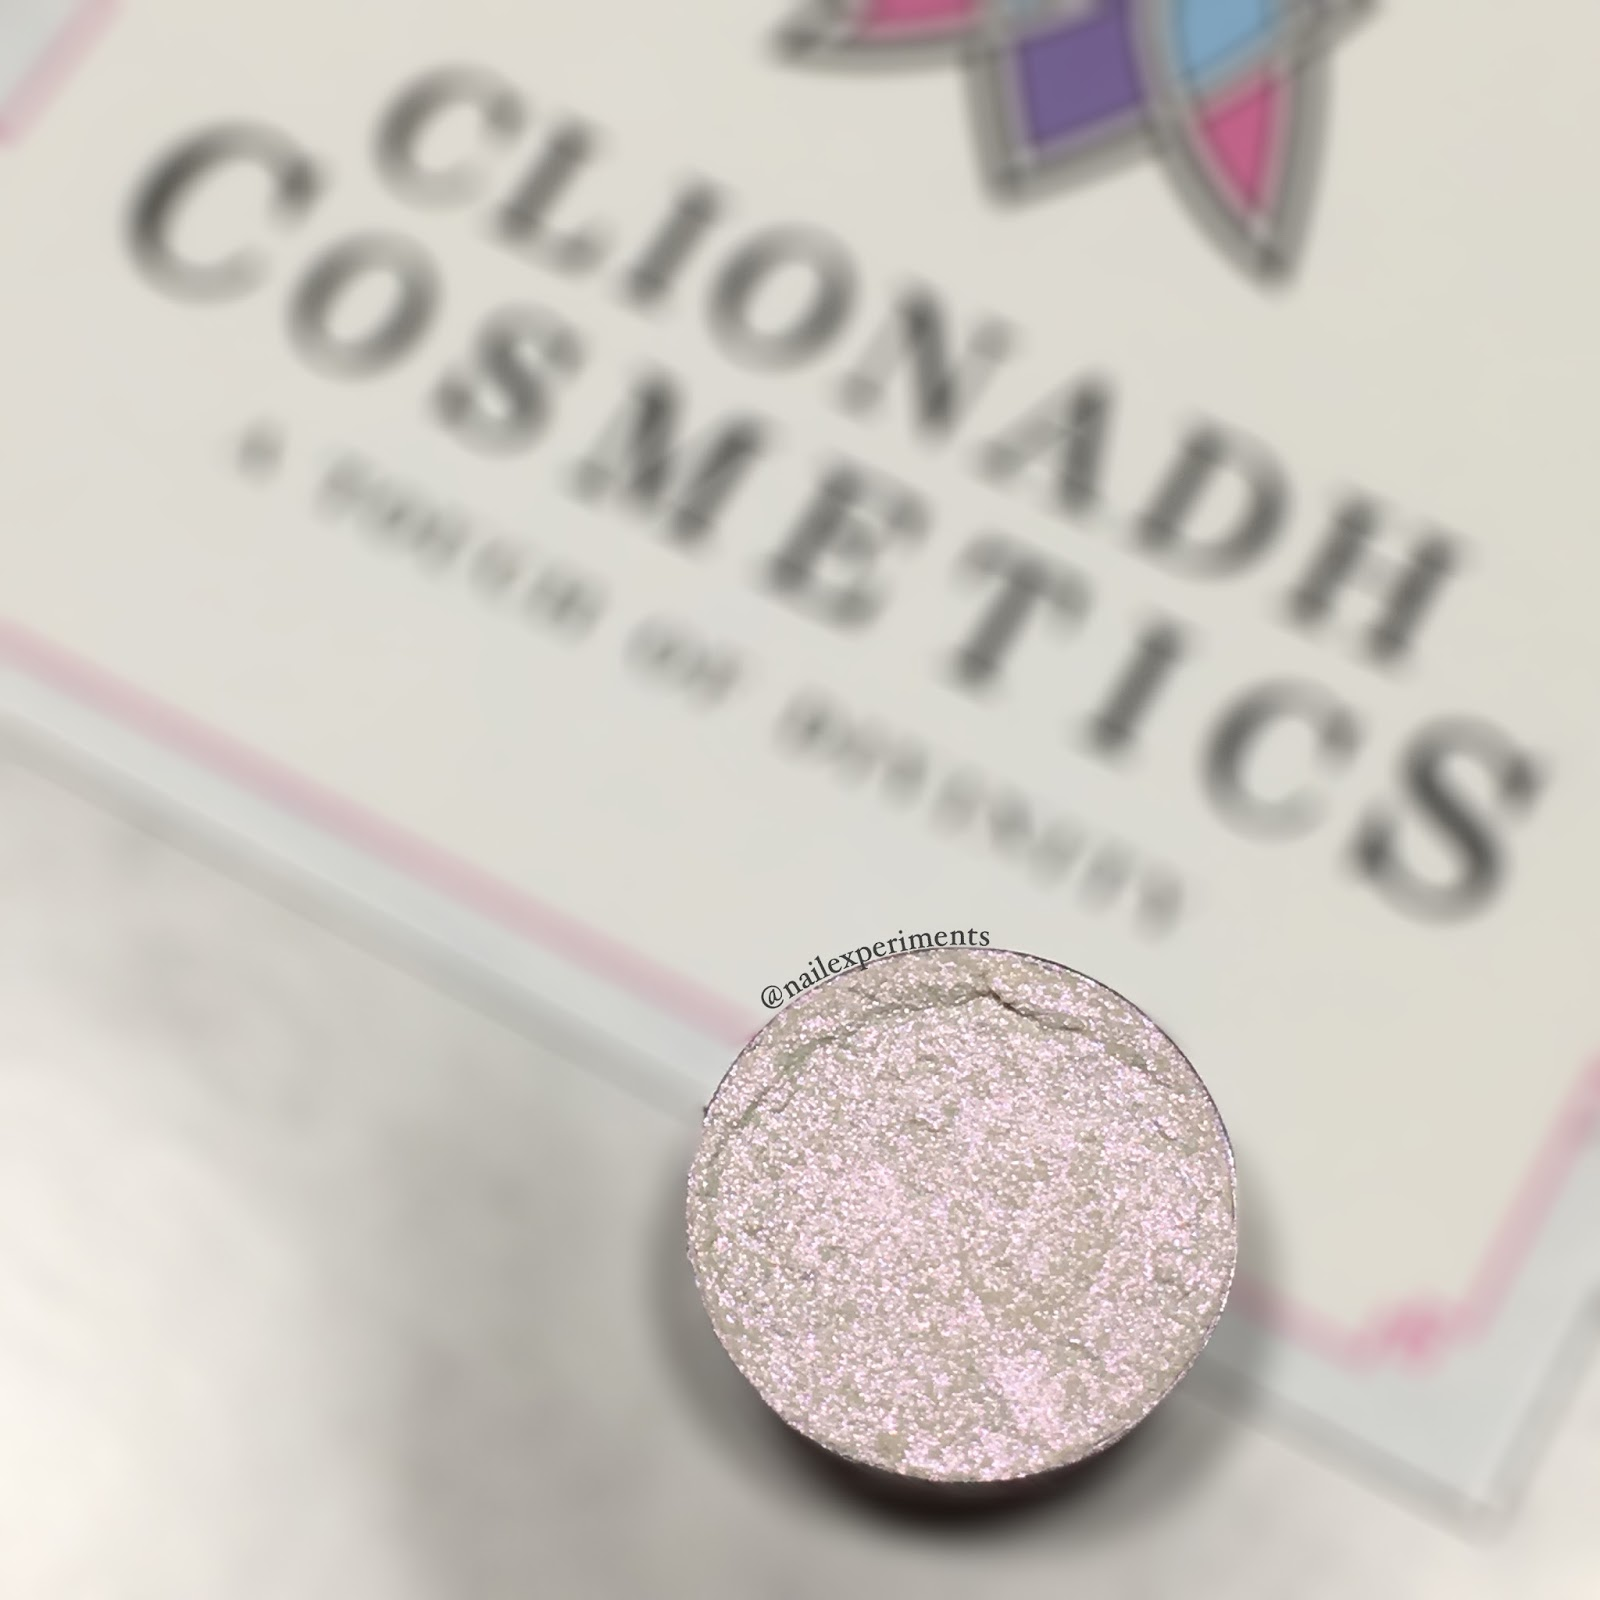 Nailexperiments swatches Spark from Clionadh Cosmetics